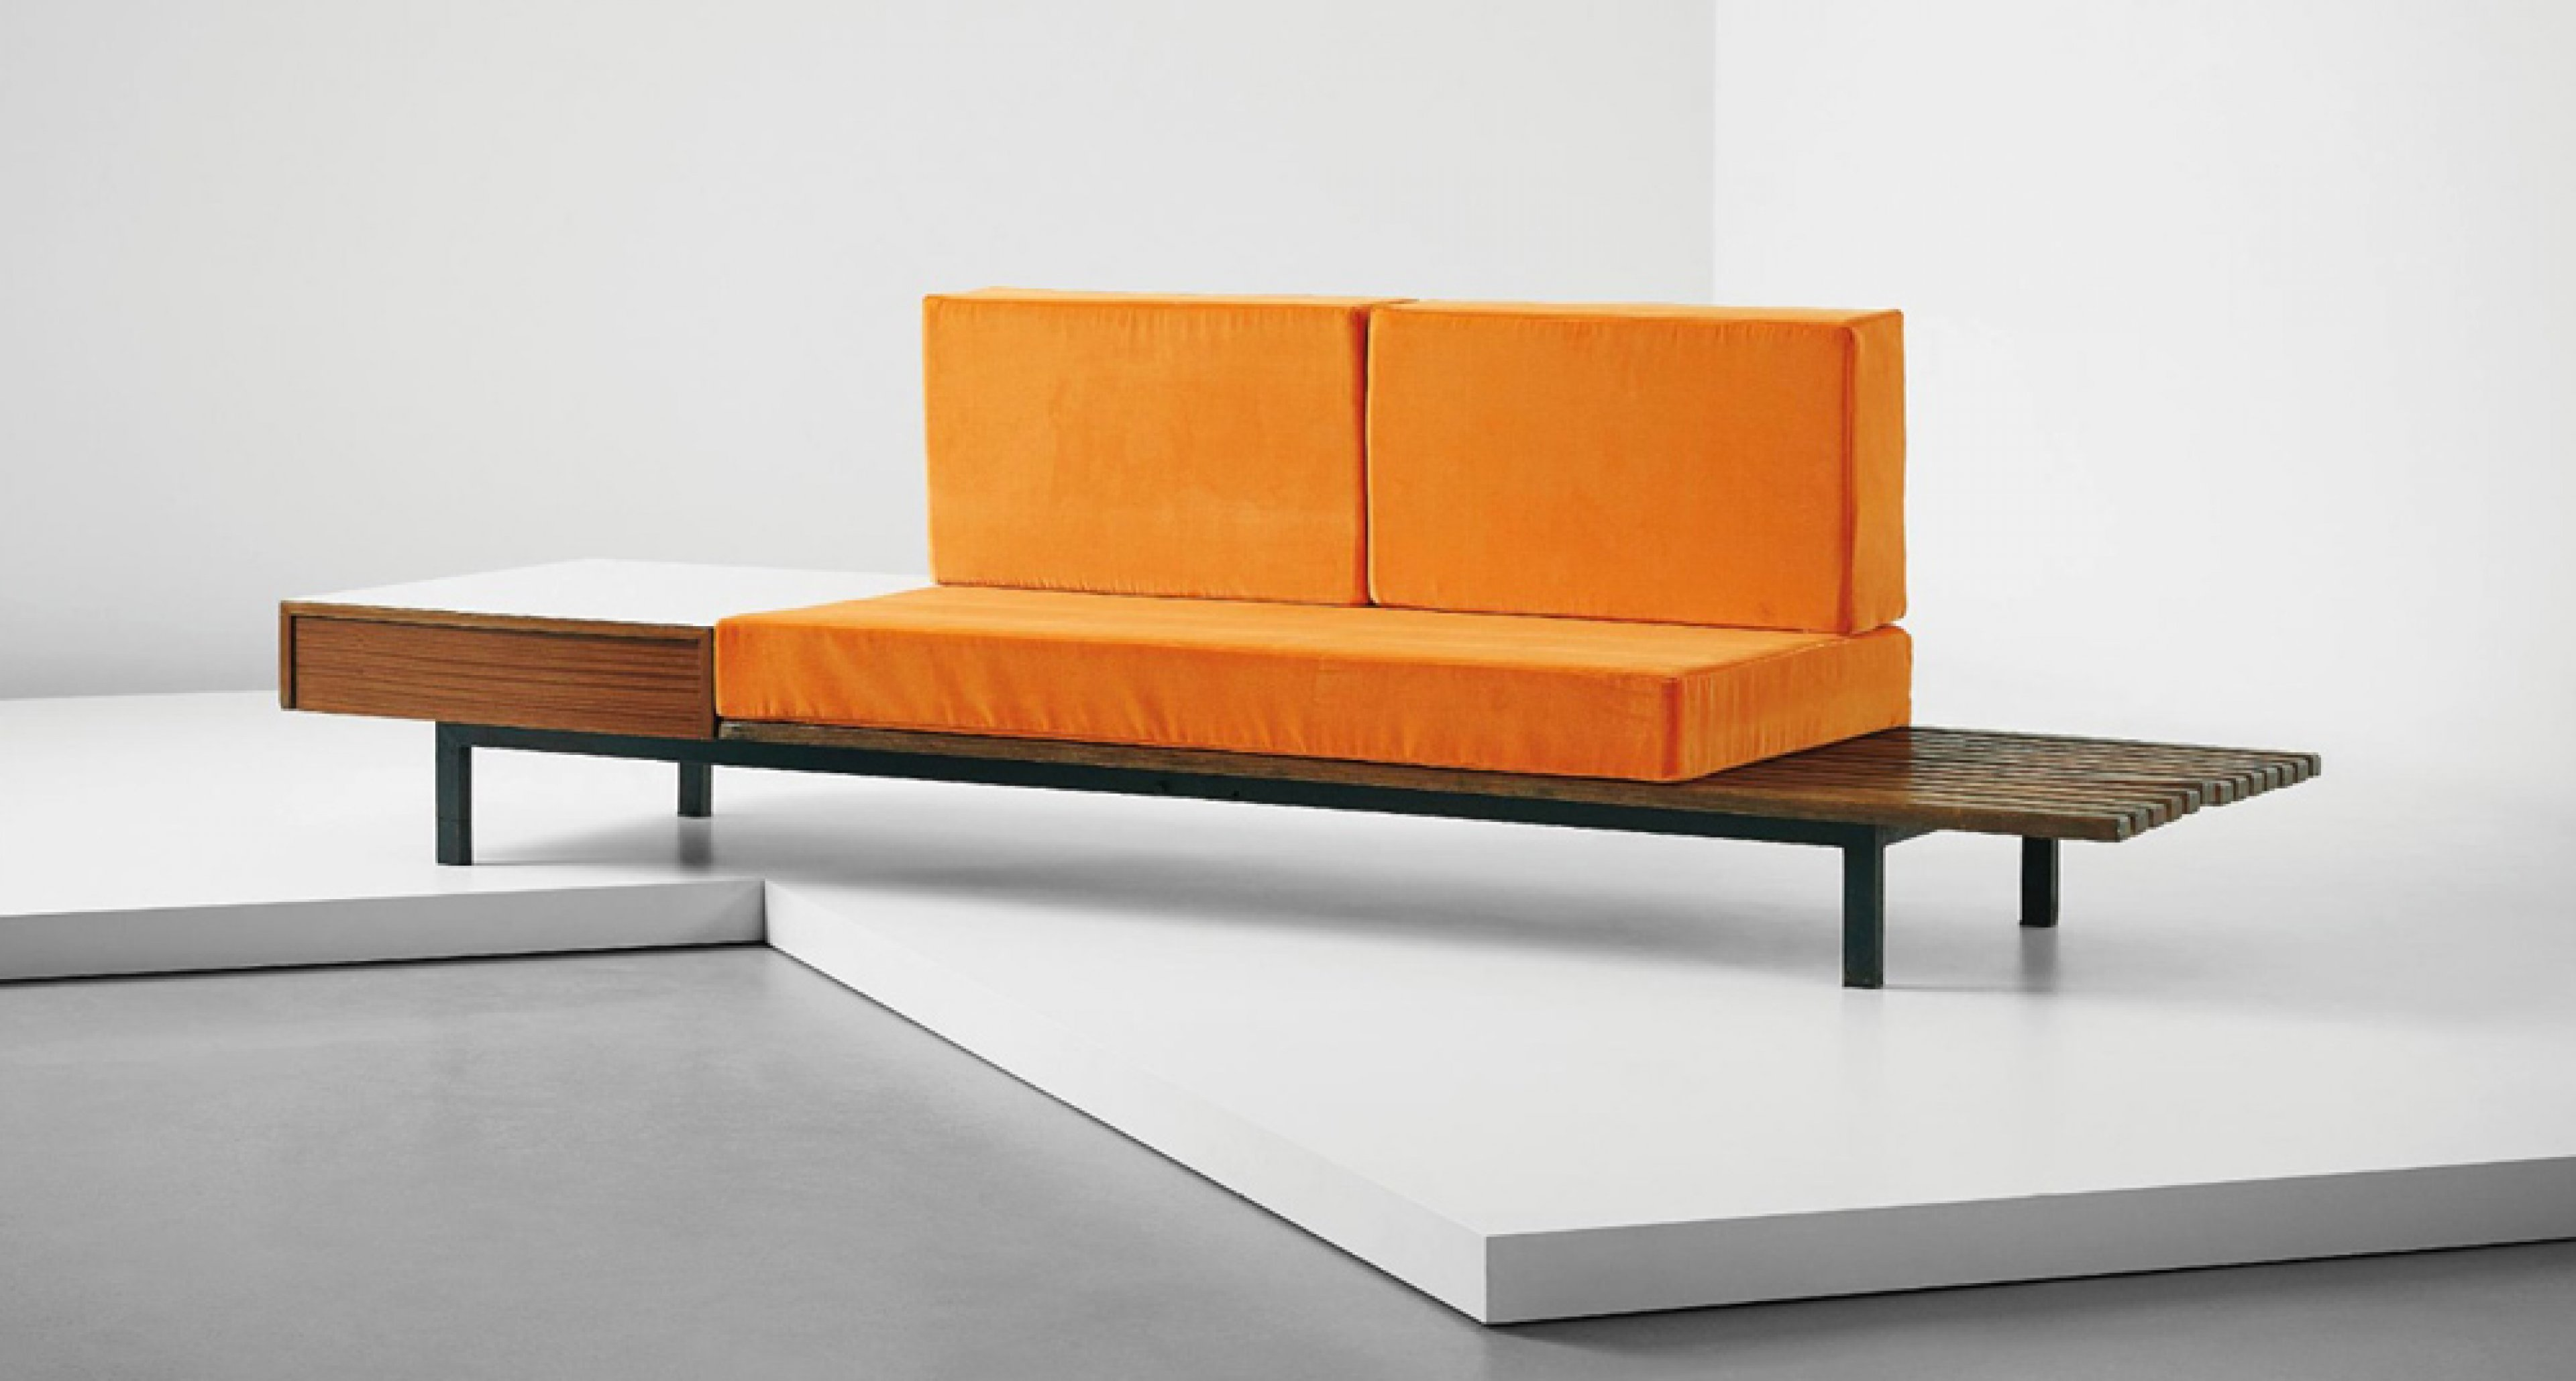 Phillips to auction famous furniture designers  work in New York   Classic  Driver Magazine. Phillips to auction famous furniture designers  work in New York